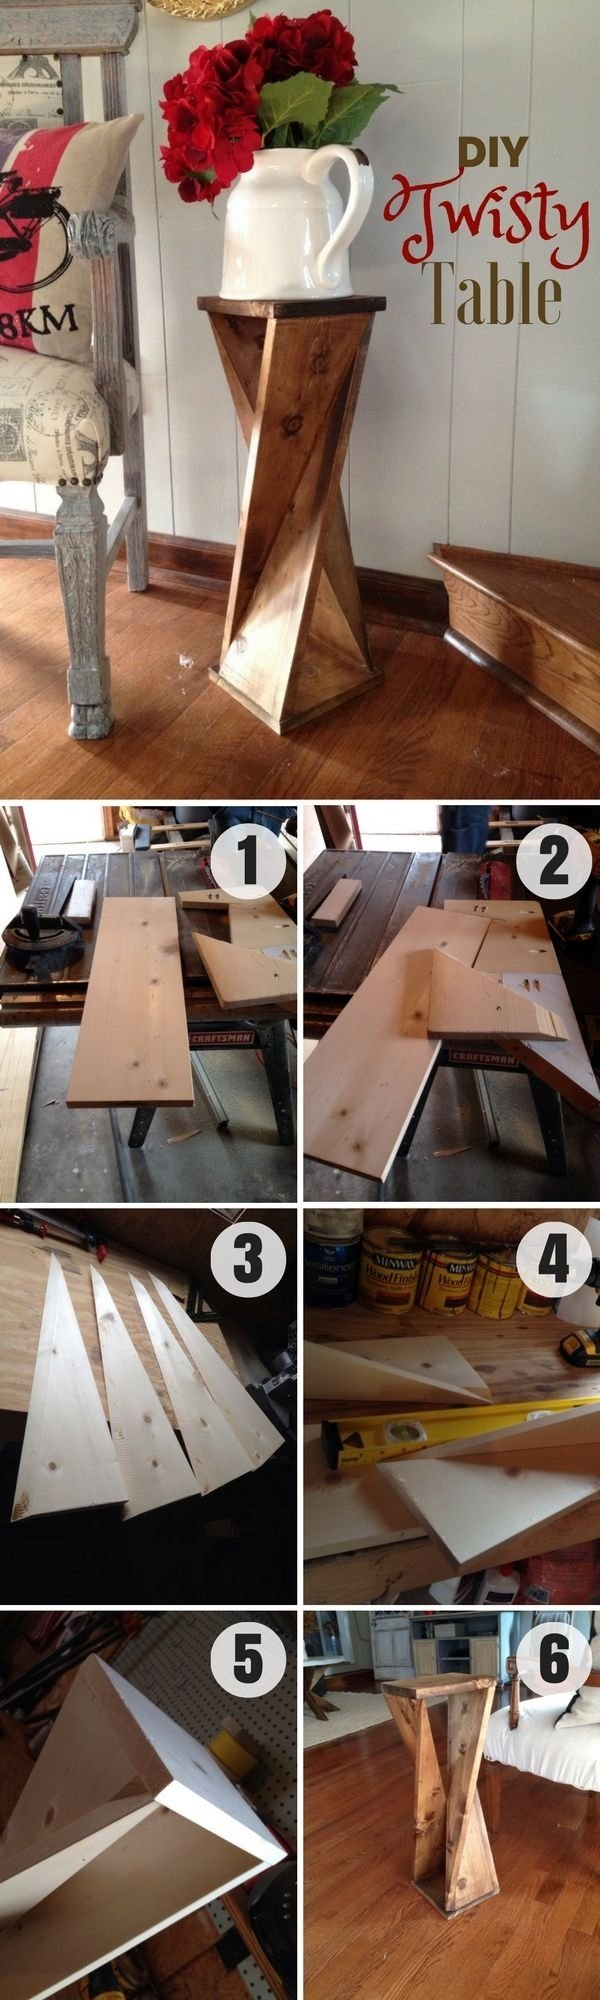 10 Best Wood Craft Ideas To Make 1009 best wood furniture images on pinterest furniture ideas 2020